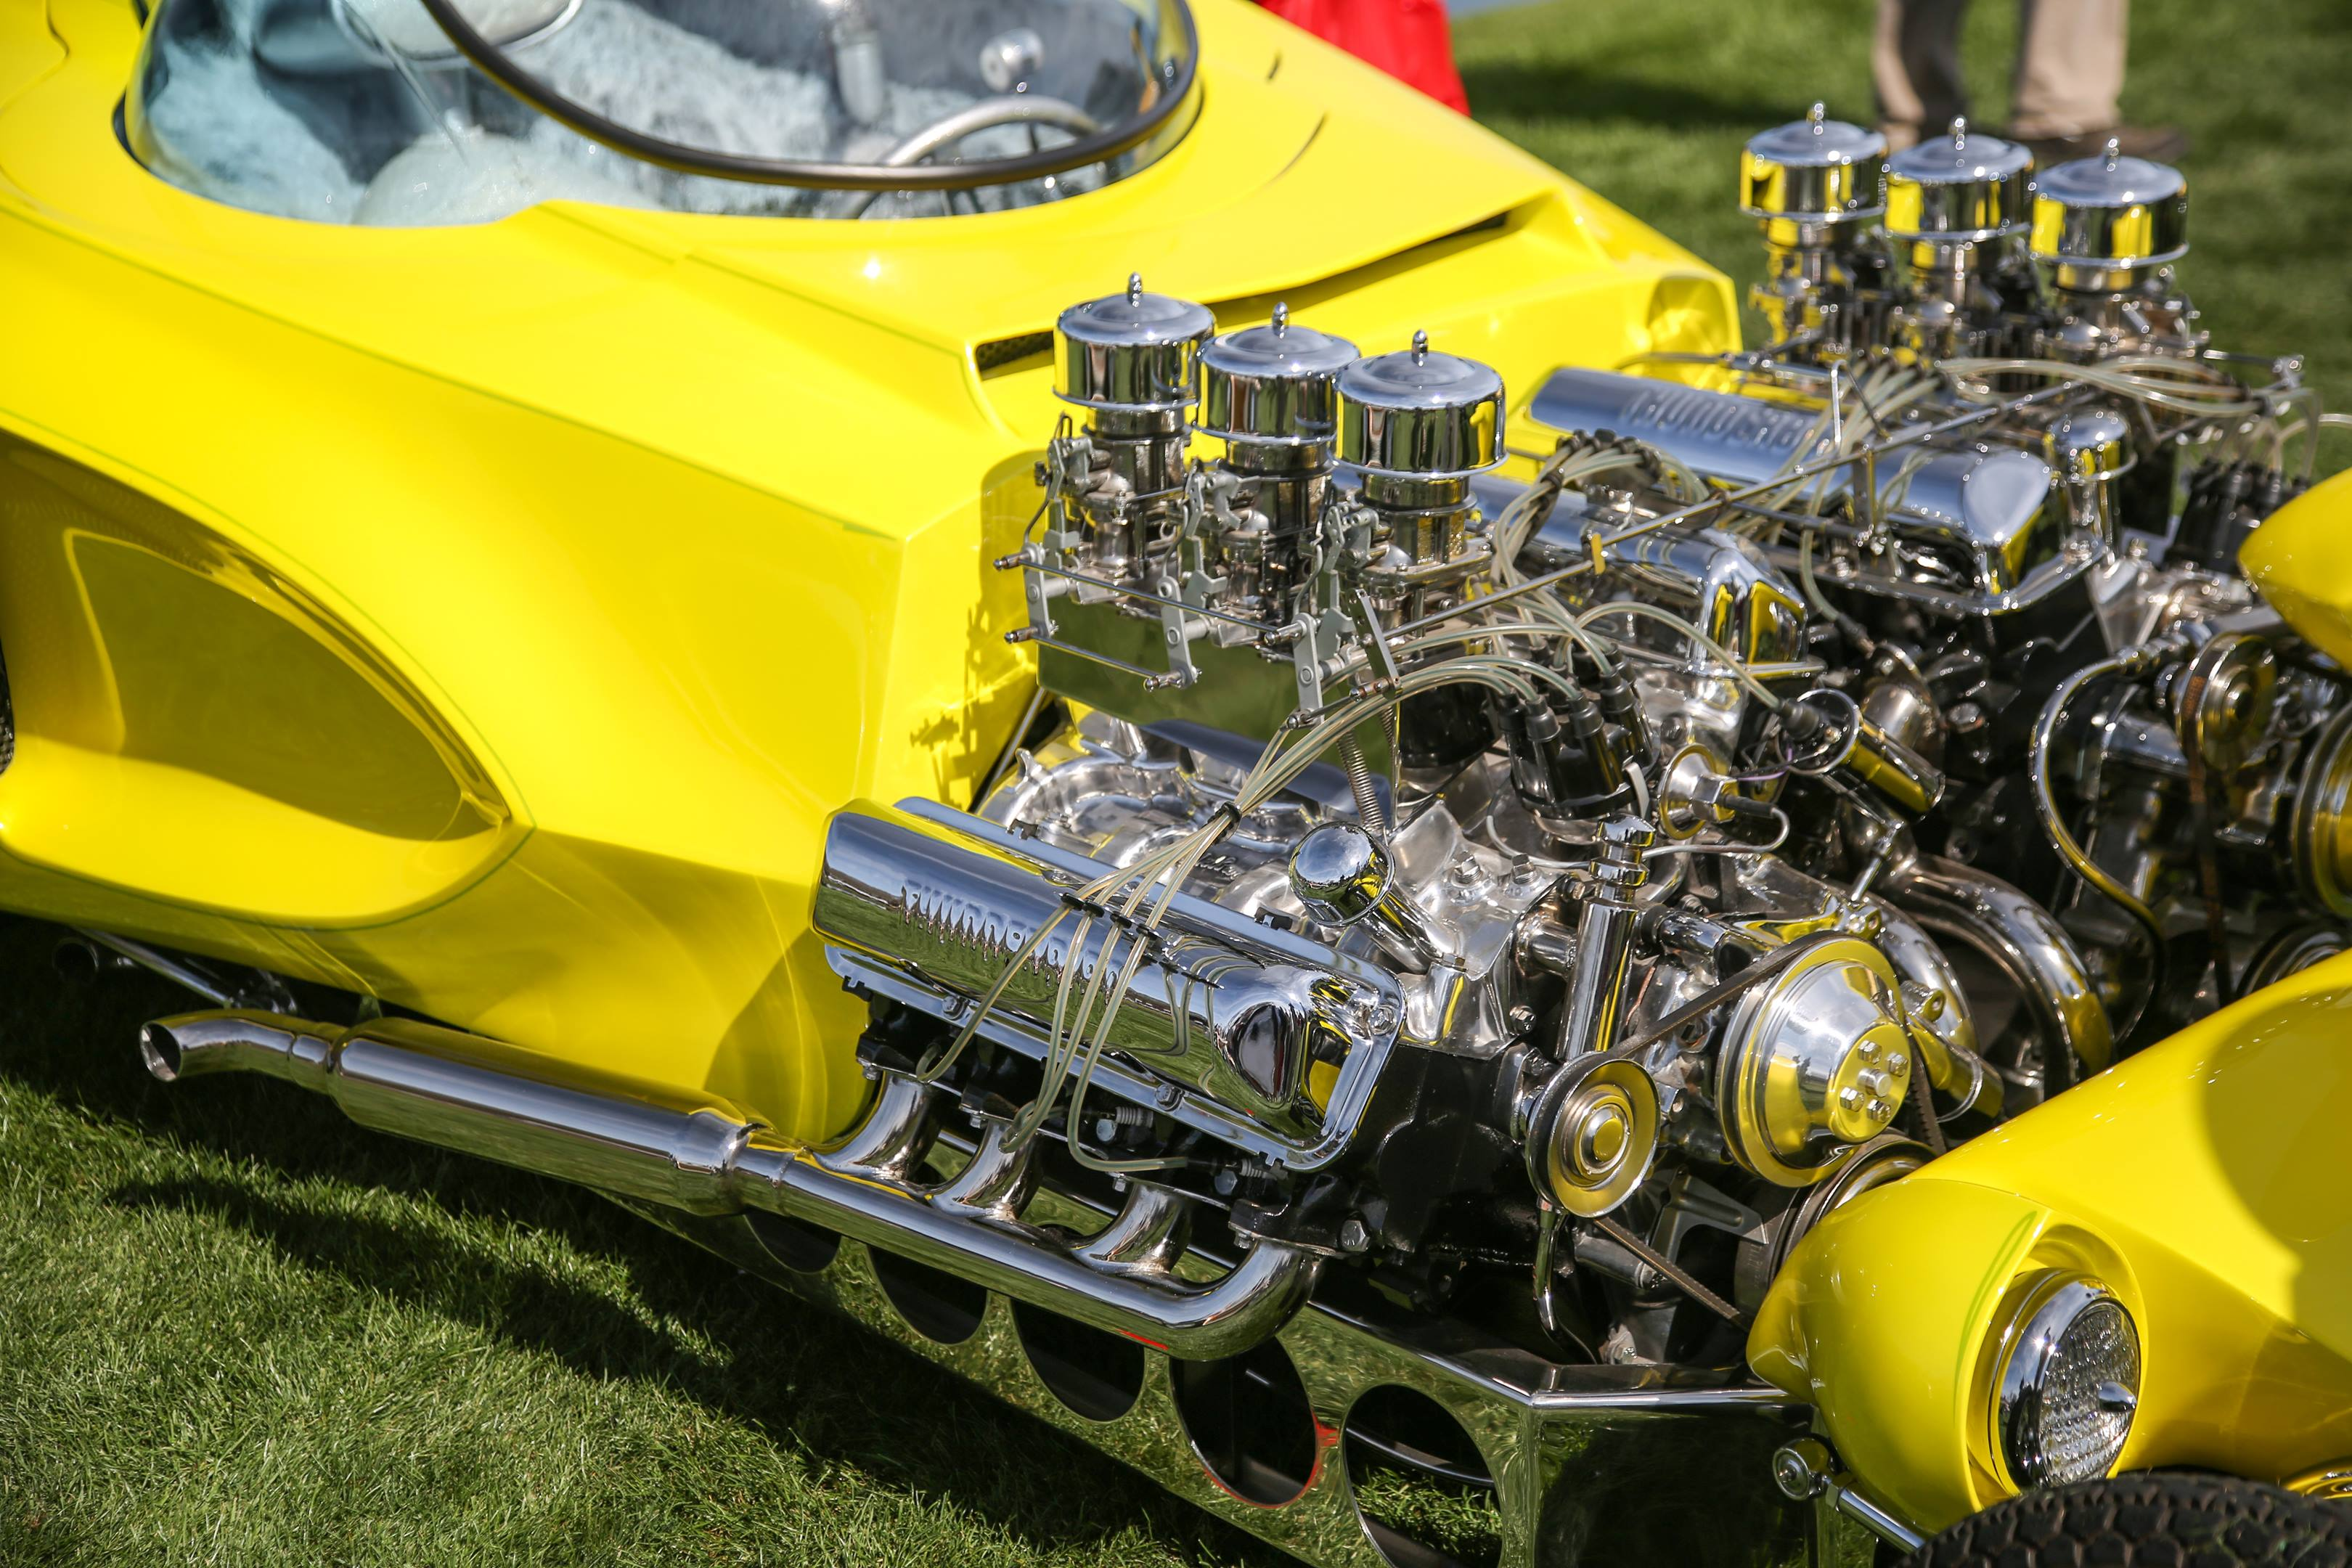 Ed Roth Mysterion engine